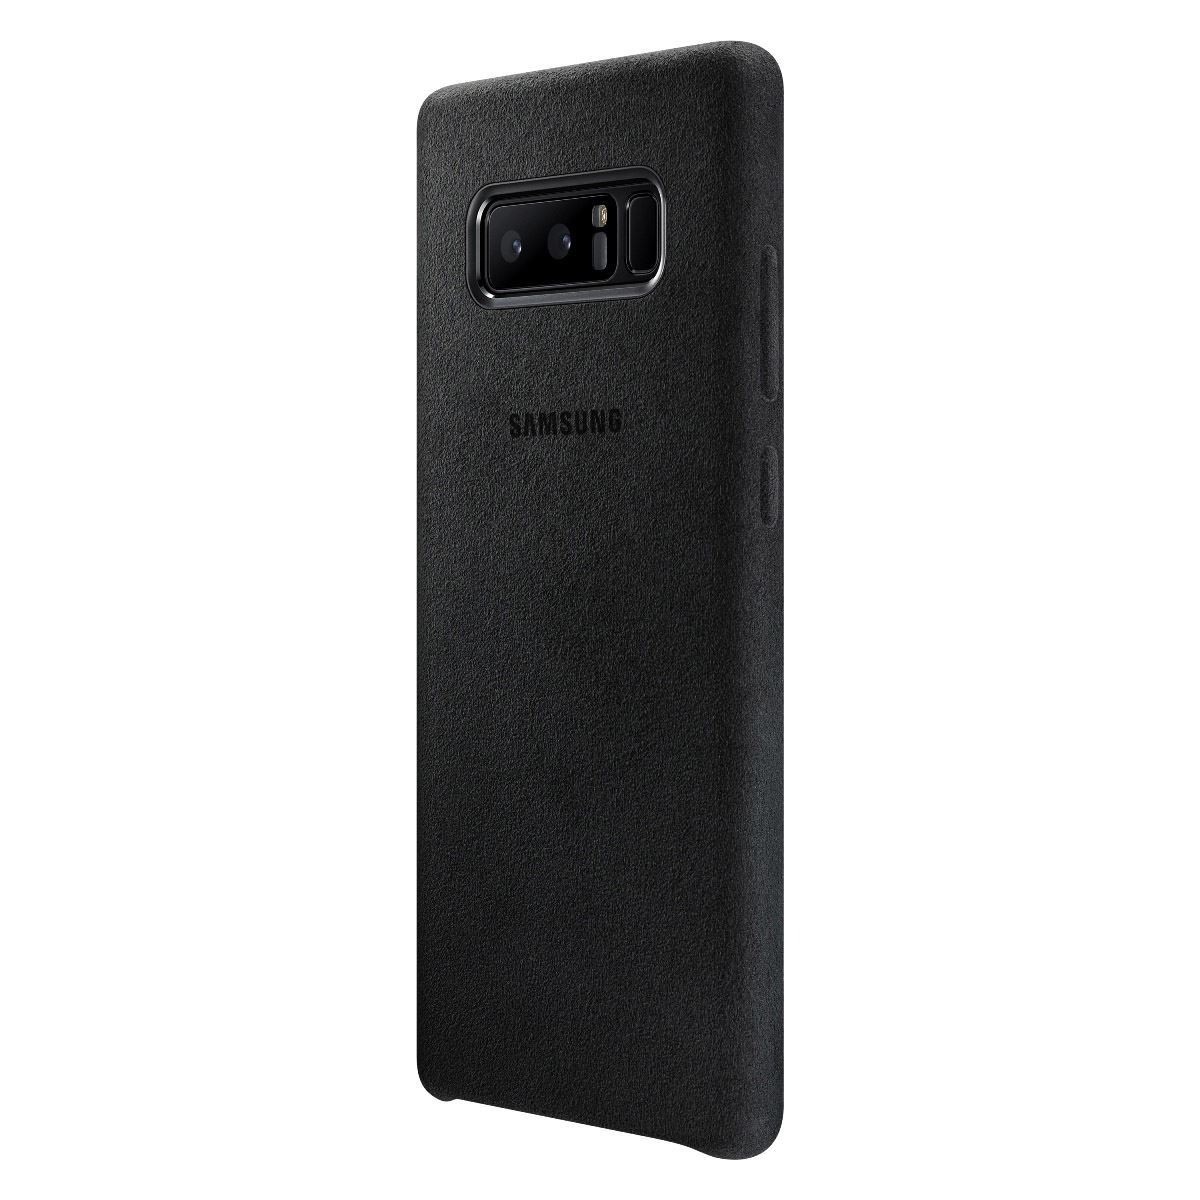 Funda alcantara cover note 8 negro  - Sanborns